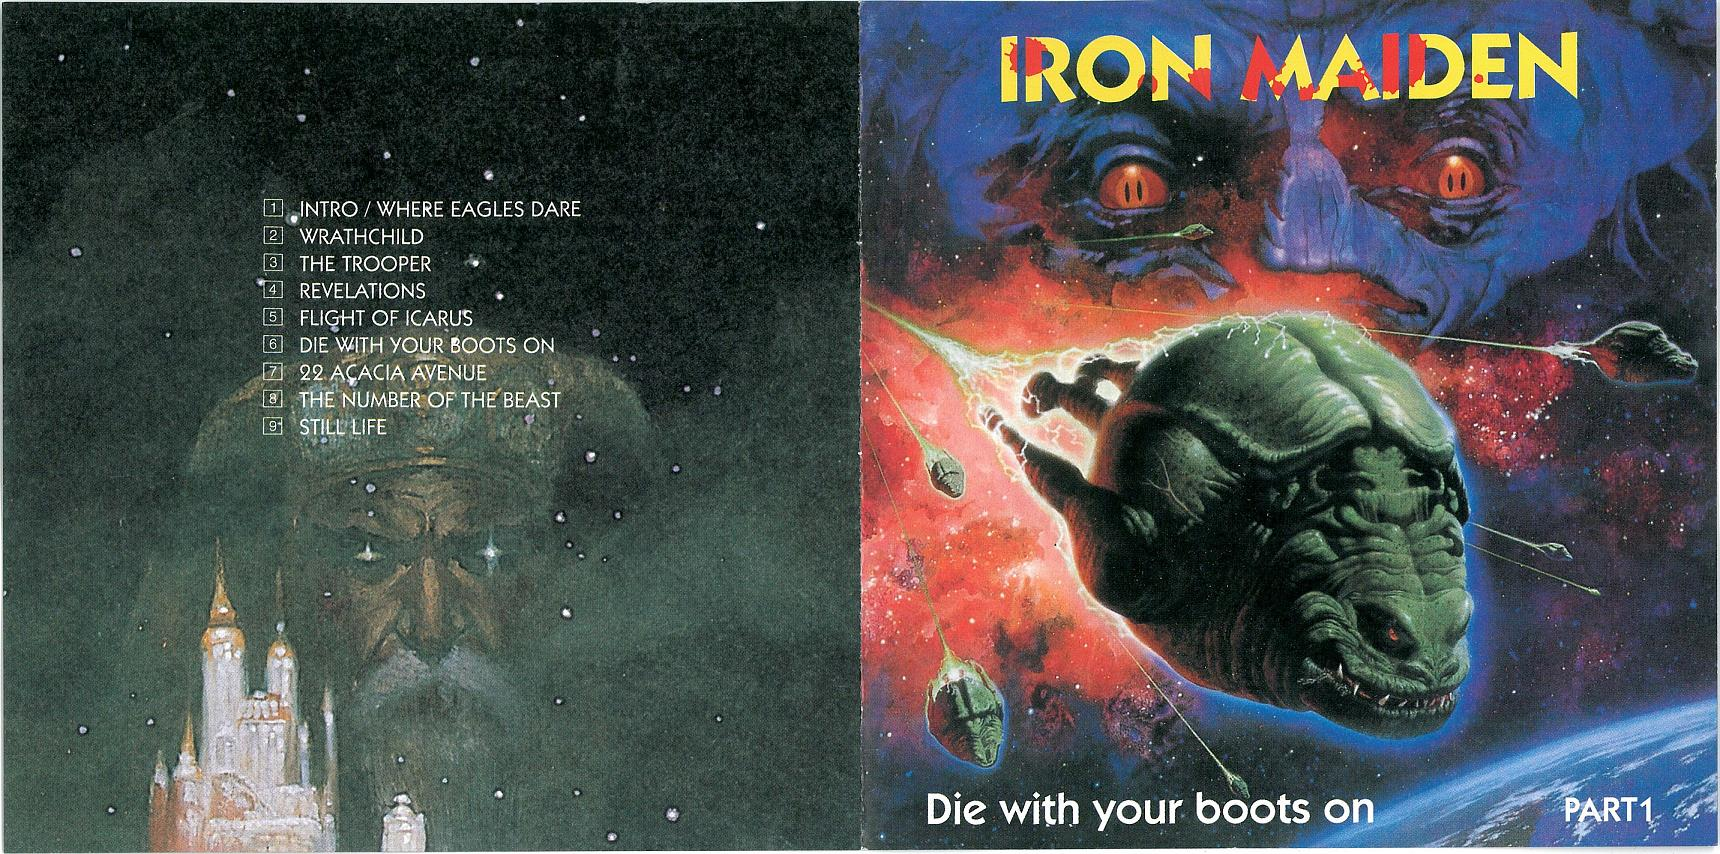 1983-05-26-DIE_WITH_YOUR_BOOTS_ON-cd2-front